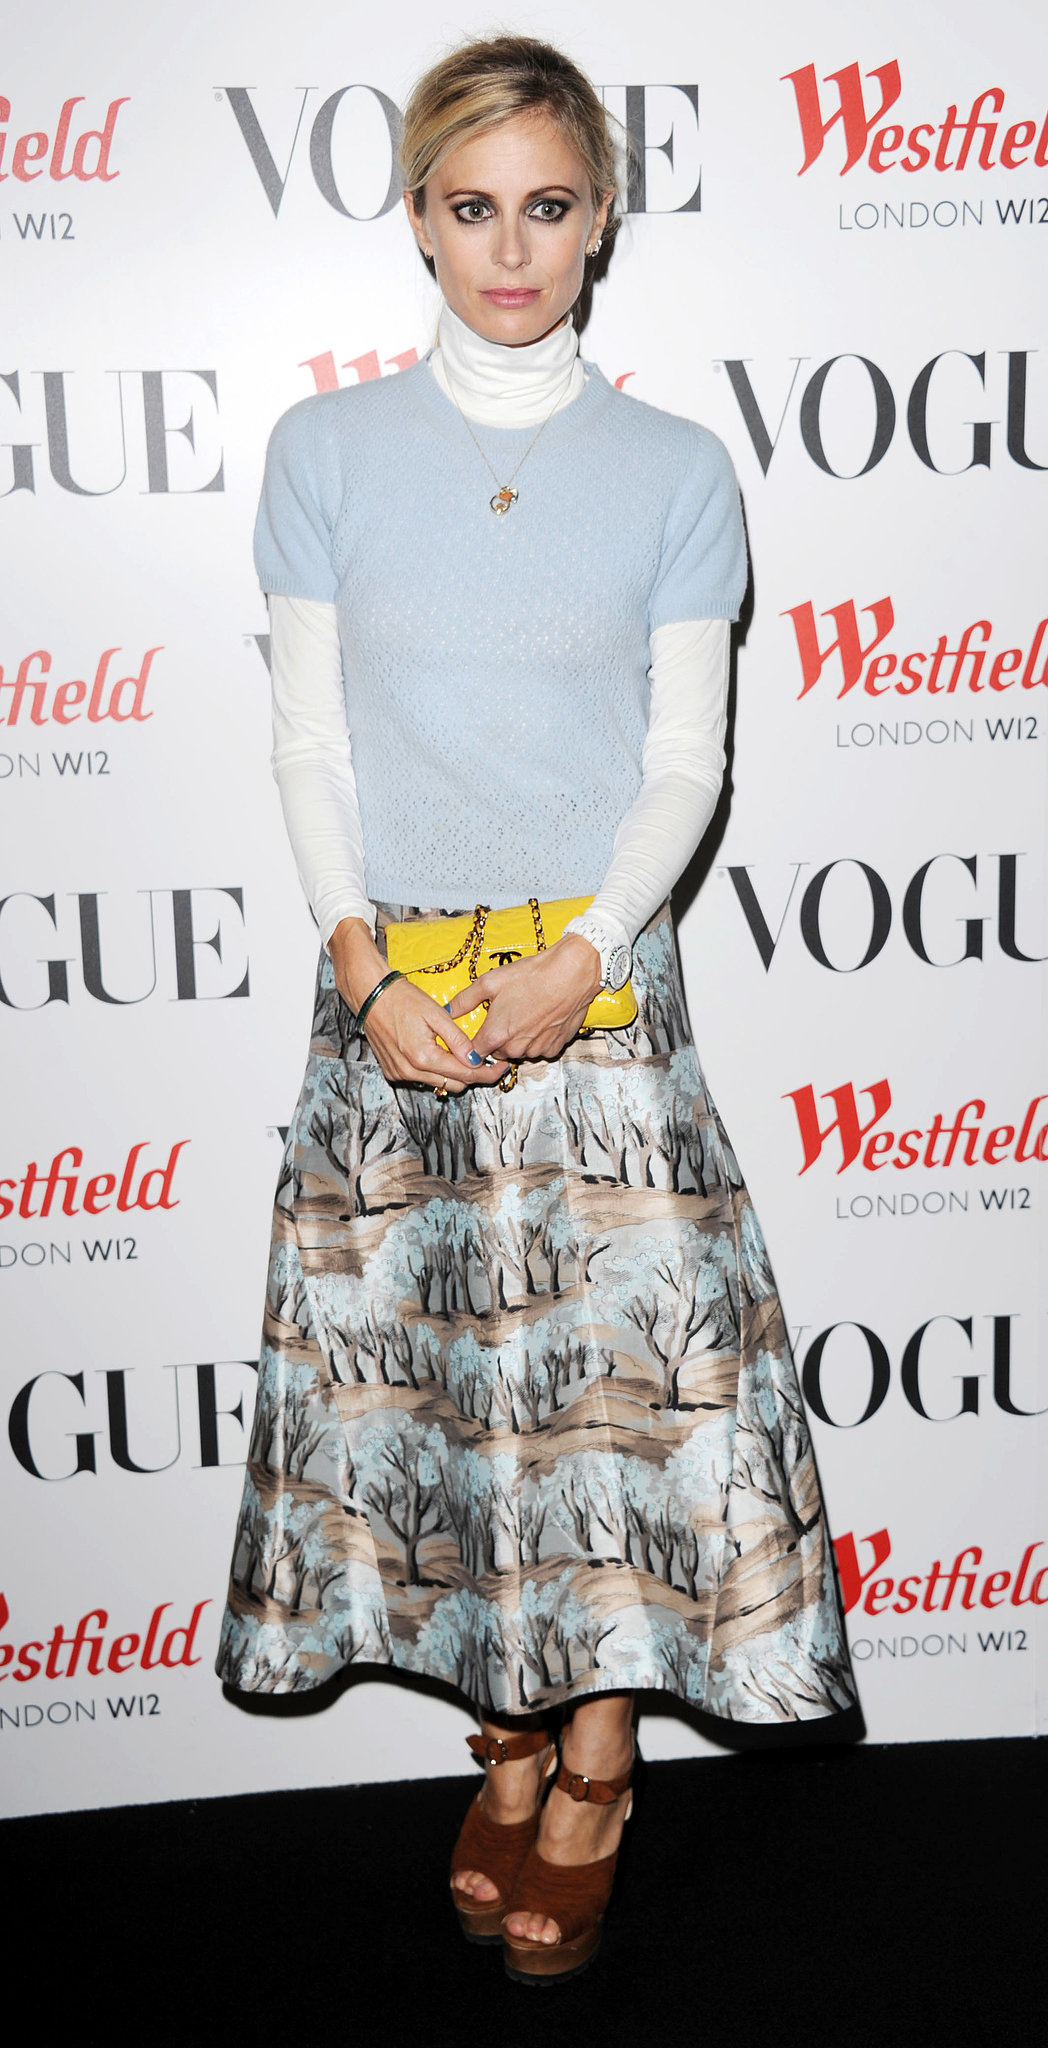 Laura Bailey layered preppy separates and added a bold yellow clutch at Westfield's London bash.